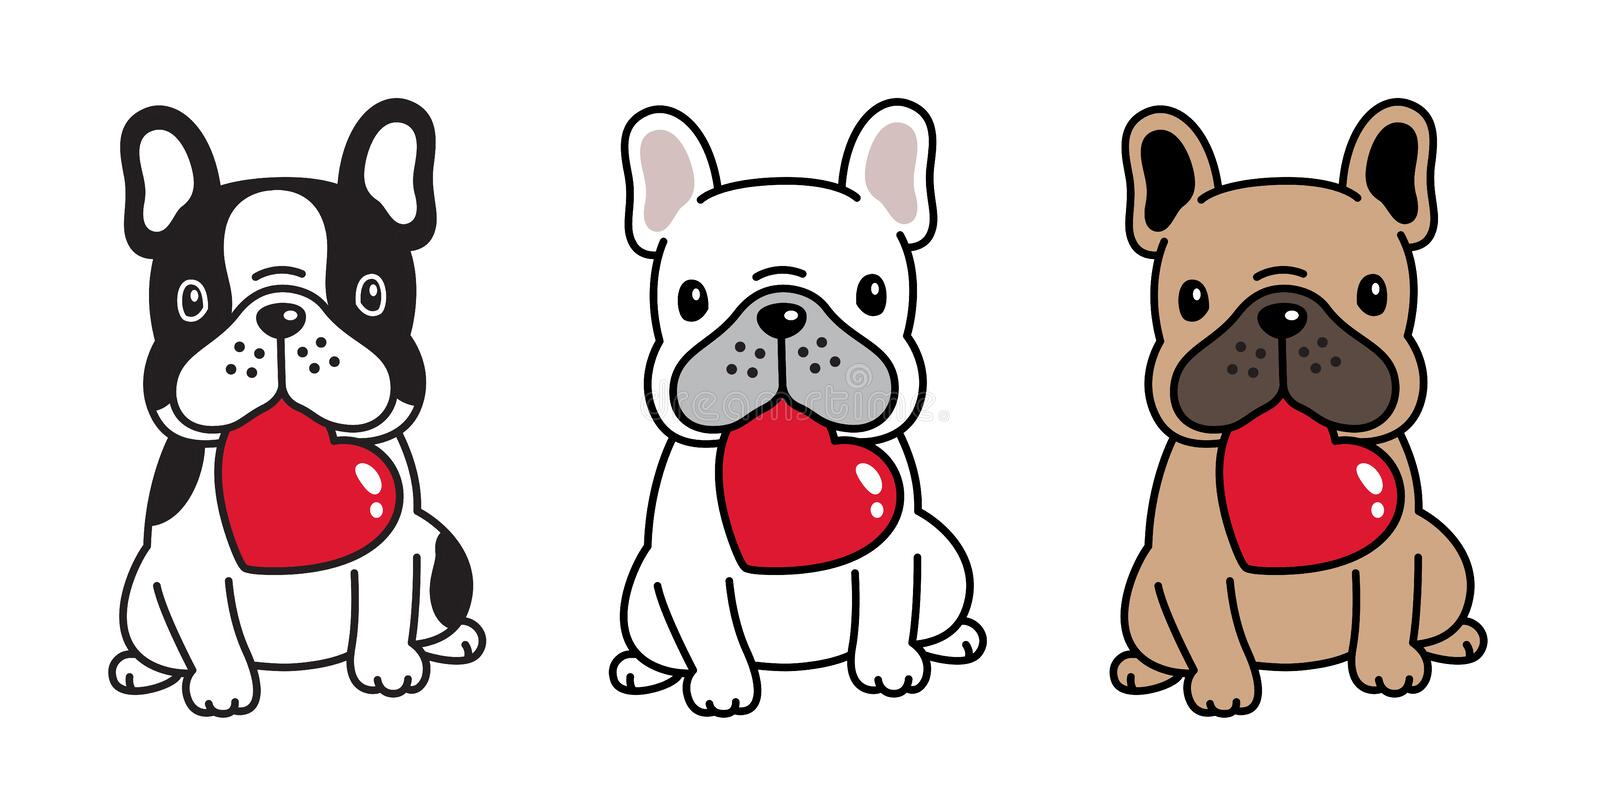 Dog vector french bulldog heart valentine cartoon character icon sitting smile logo breed illustration. Cute vector illustration